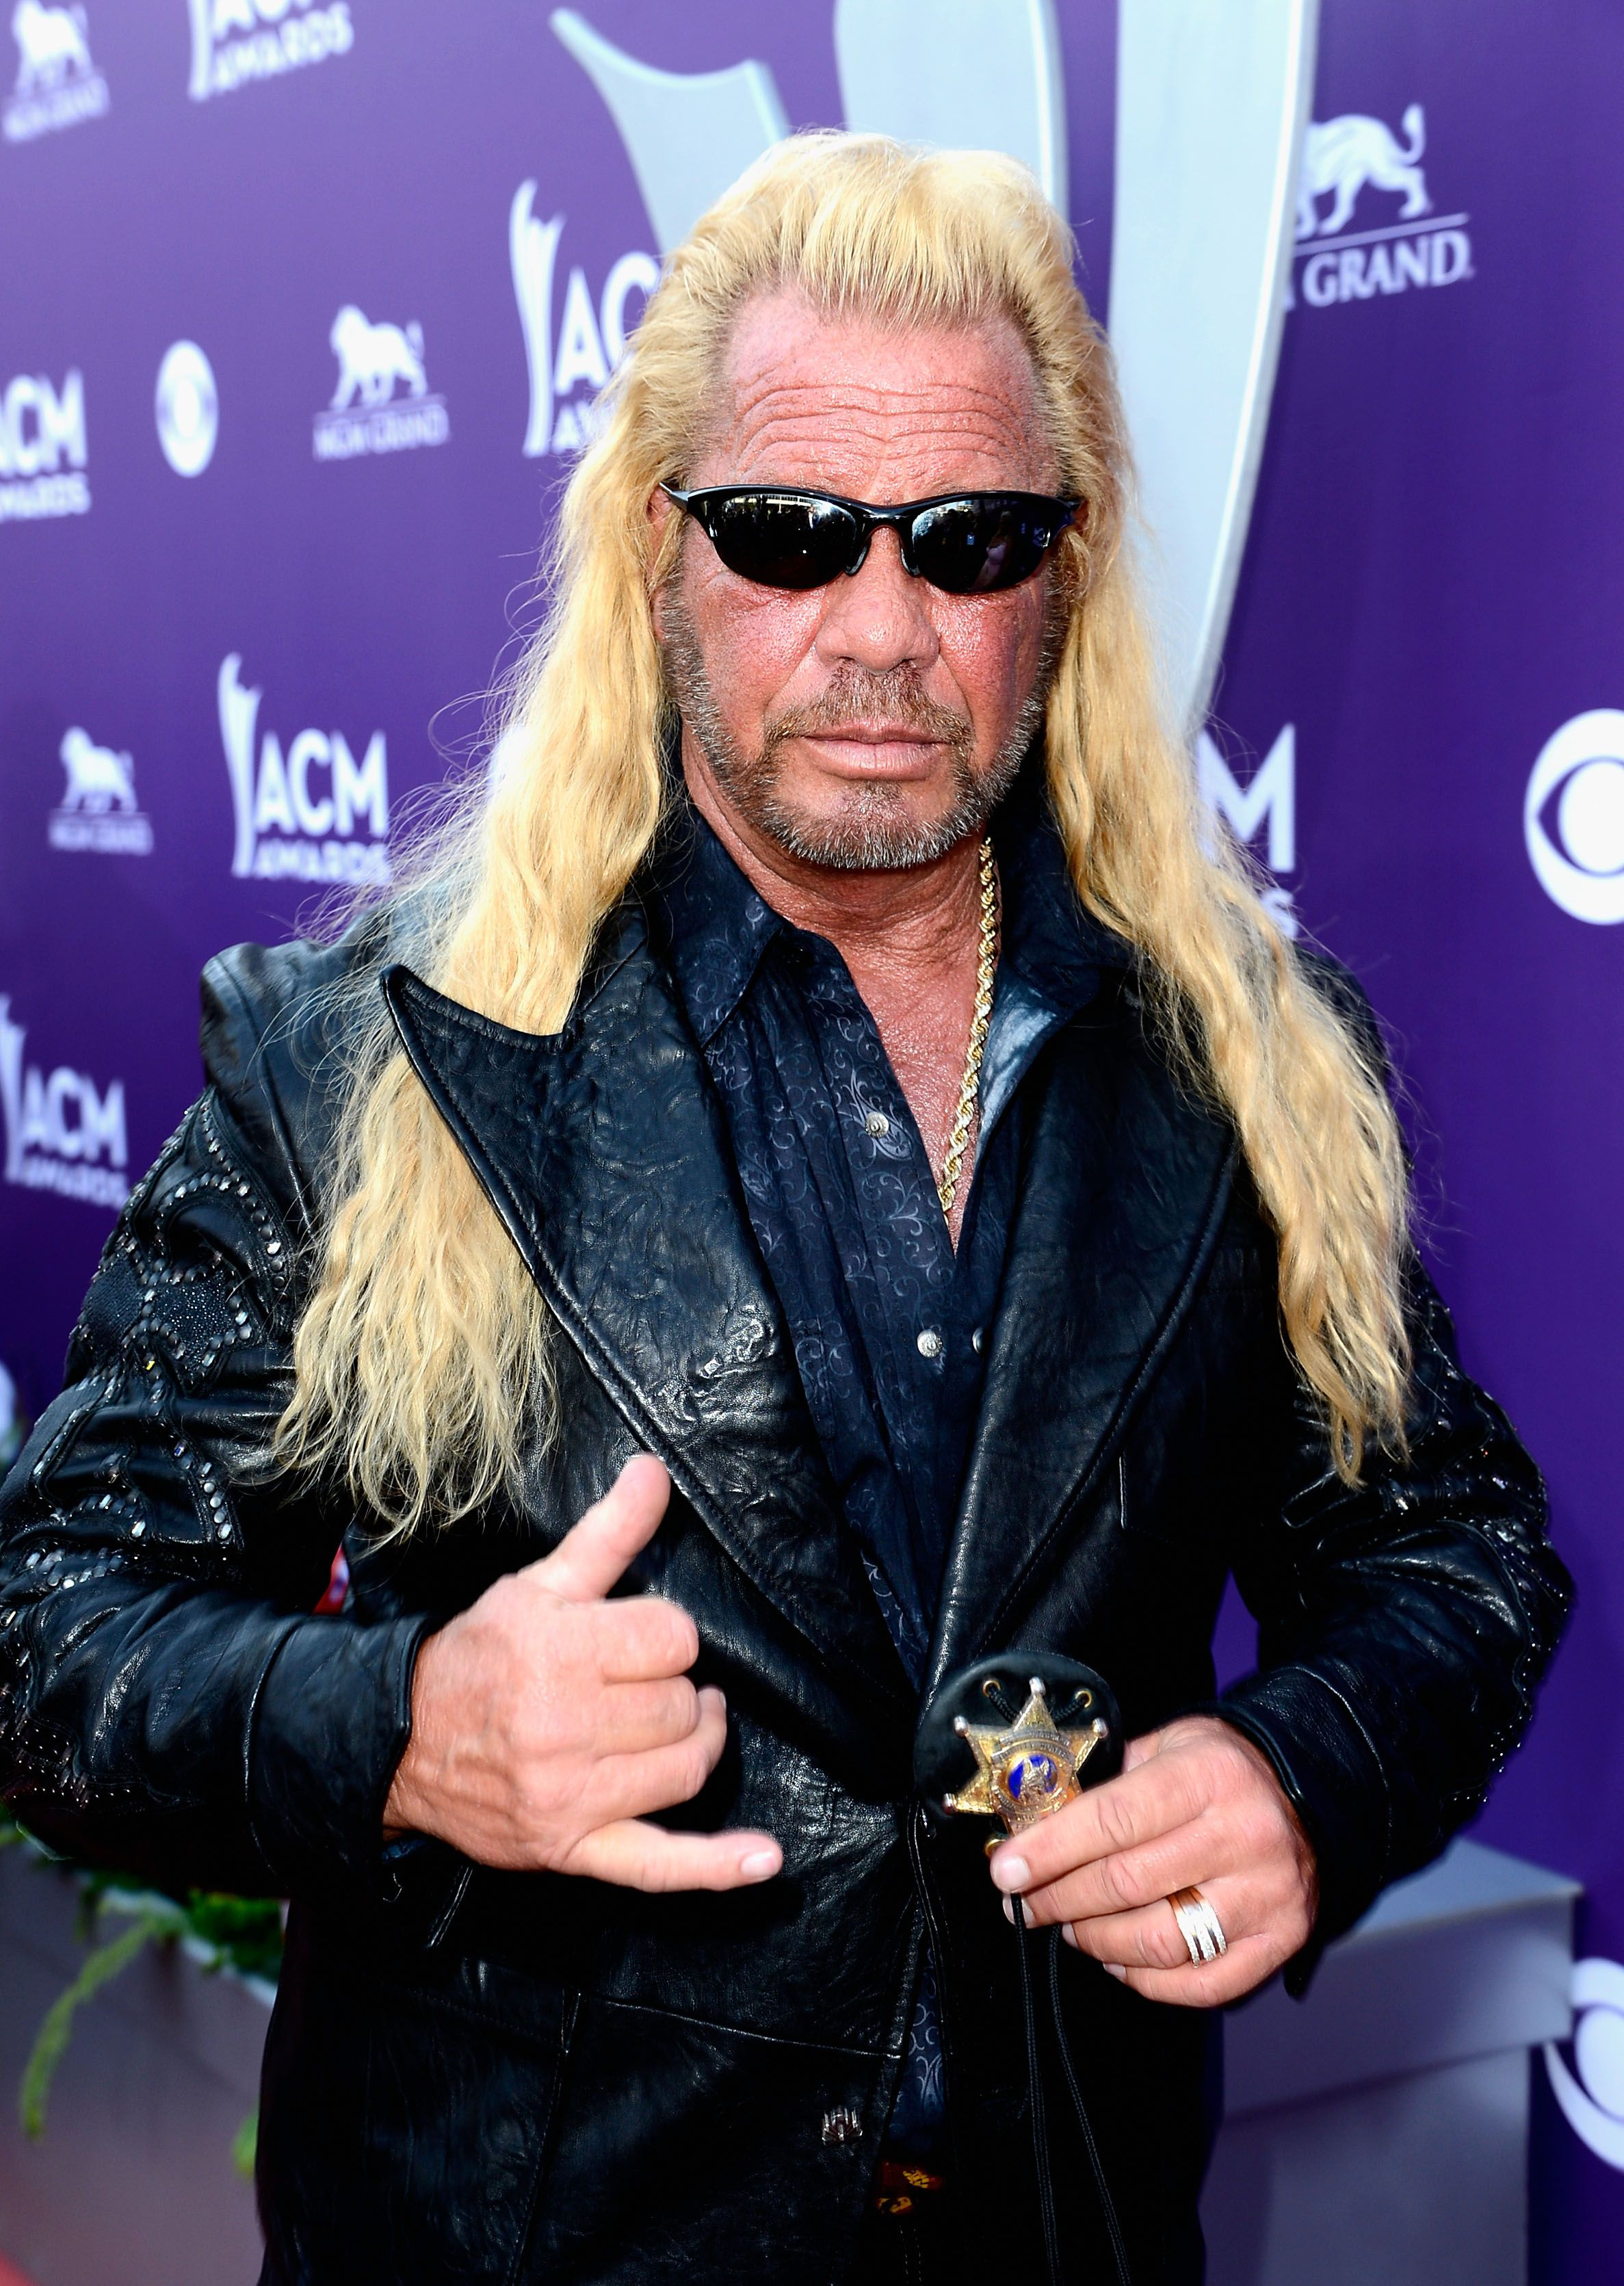 Dog the Bounty Hunter at the 48th Annual Academy of Country Music Awards at the MGM Grand Garden Arena on April 7, 2013 | Photo: Getty Images